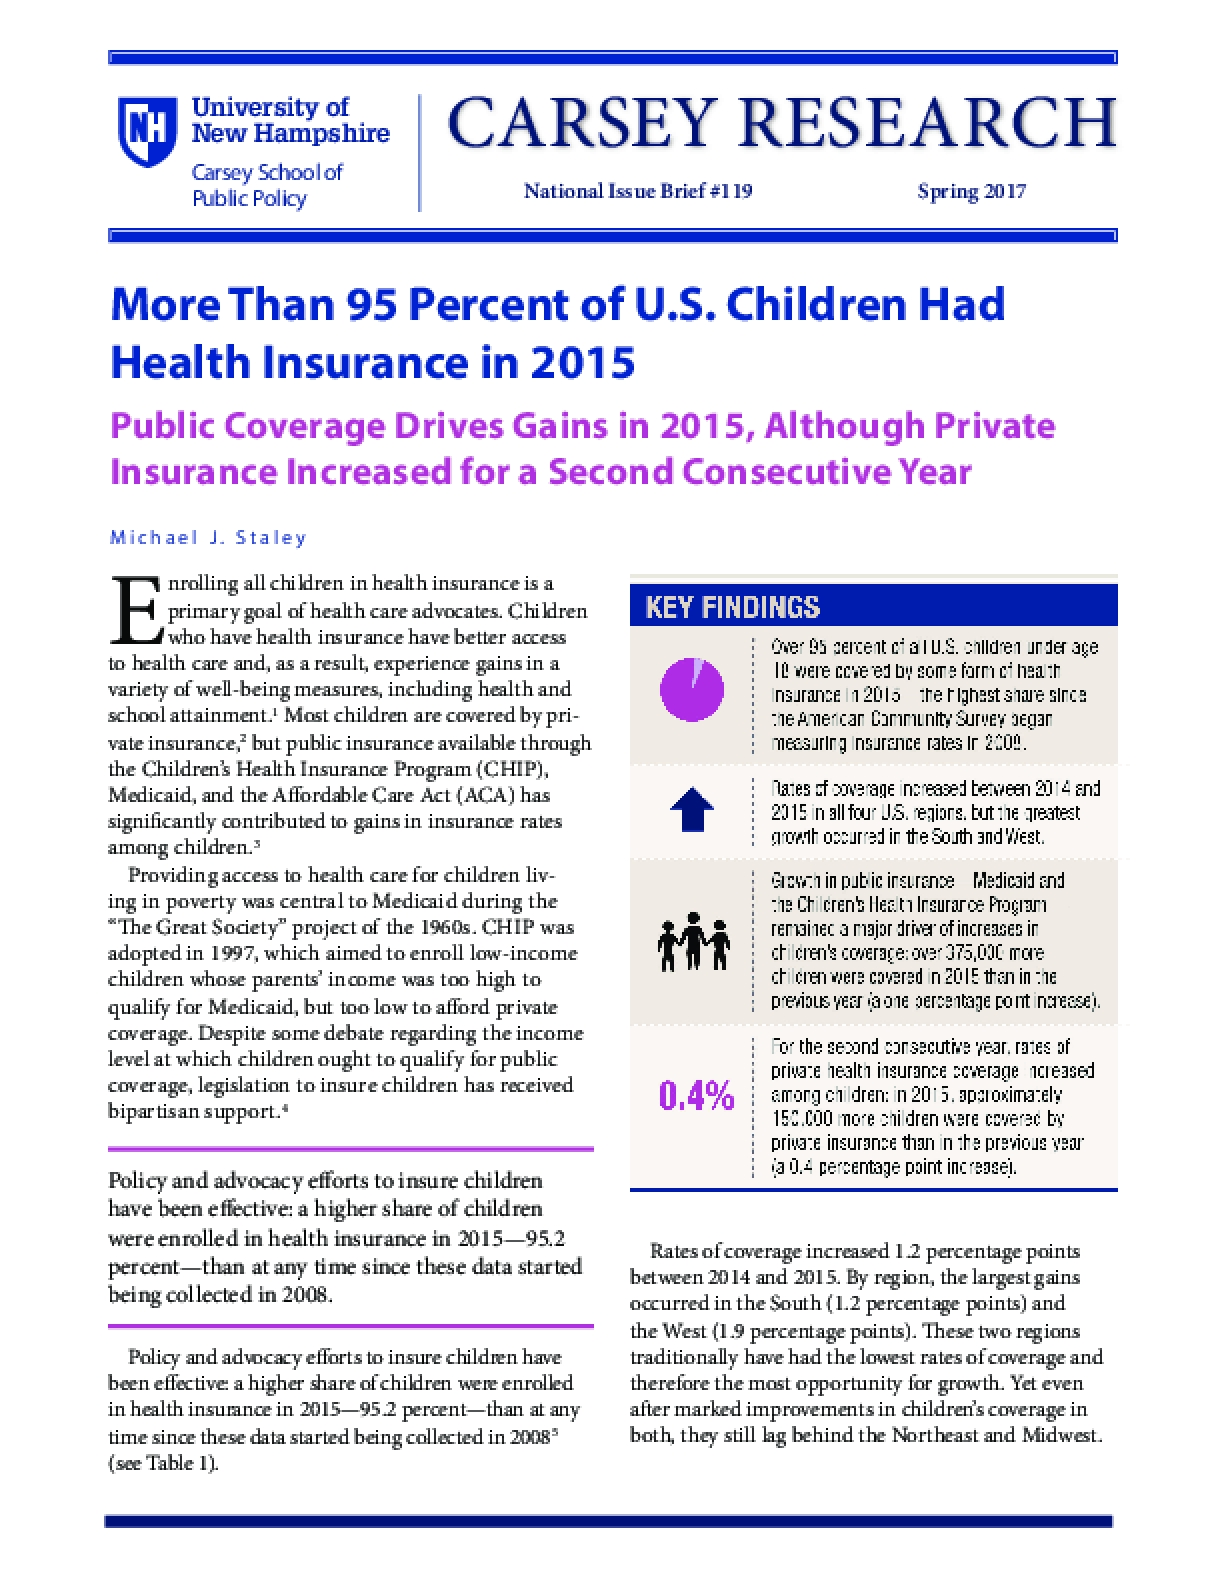 More Than 95 Percent of U.S. Children Had Health Insurance in 2015